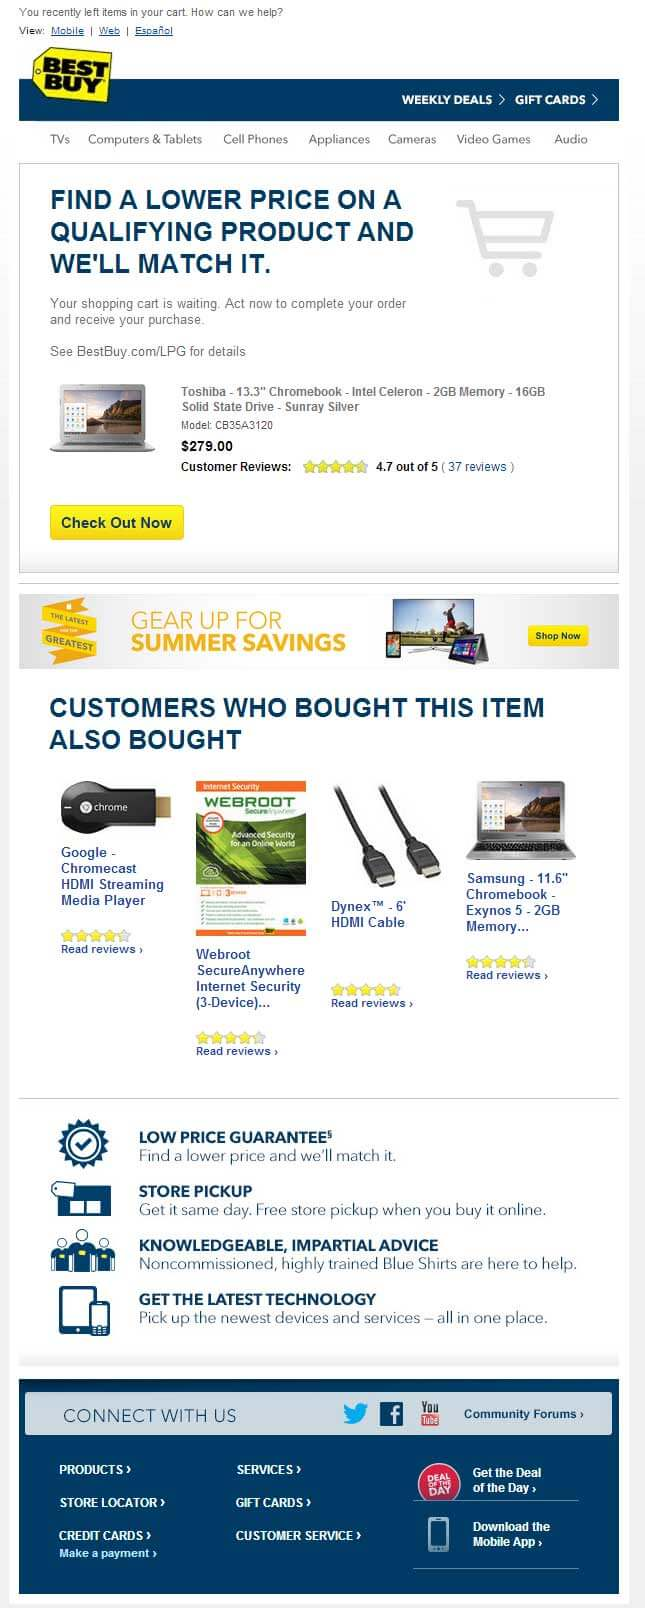 BestBuy-Shopping-Cart-Abandoment